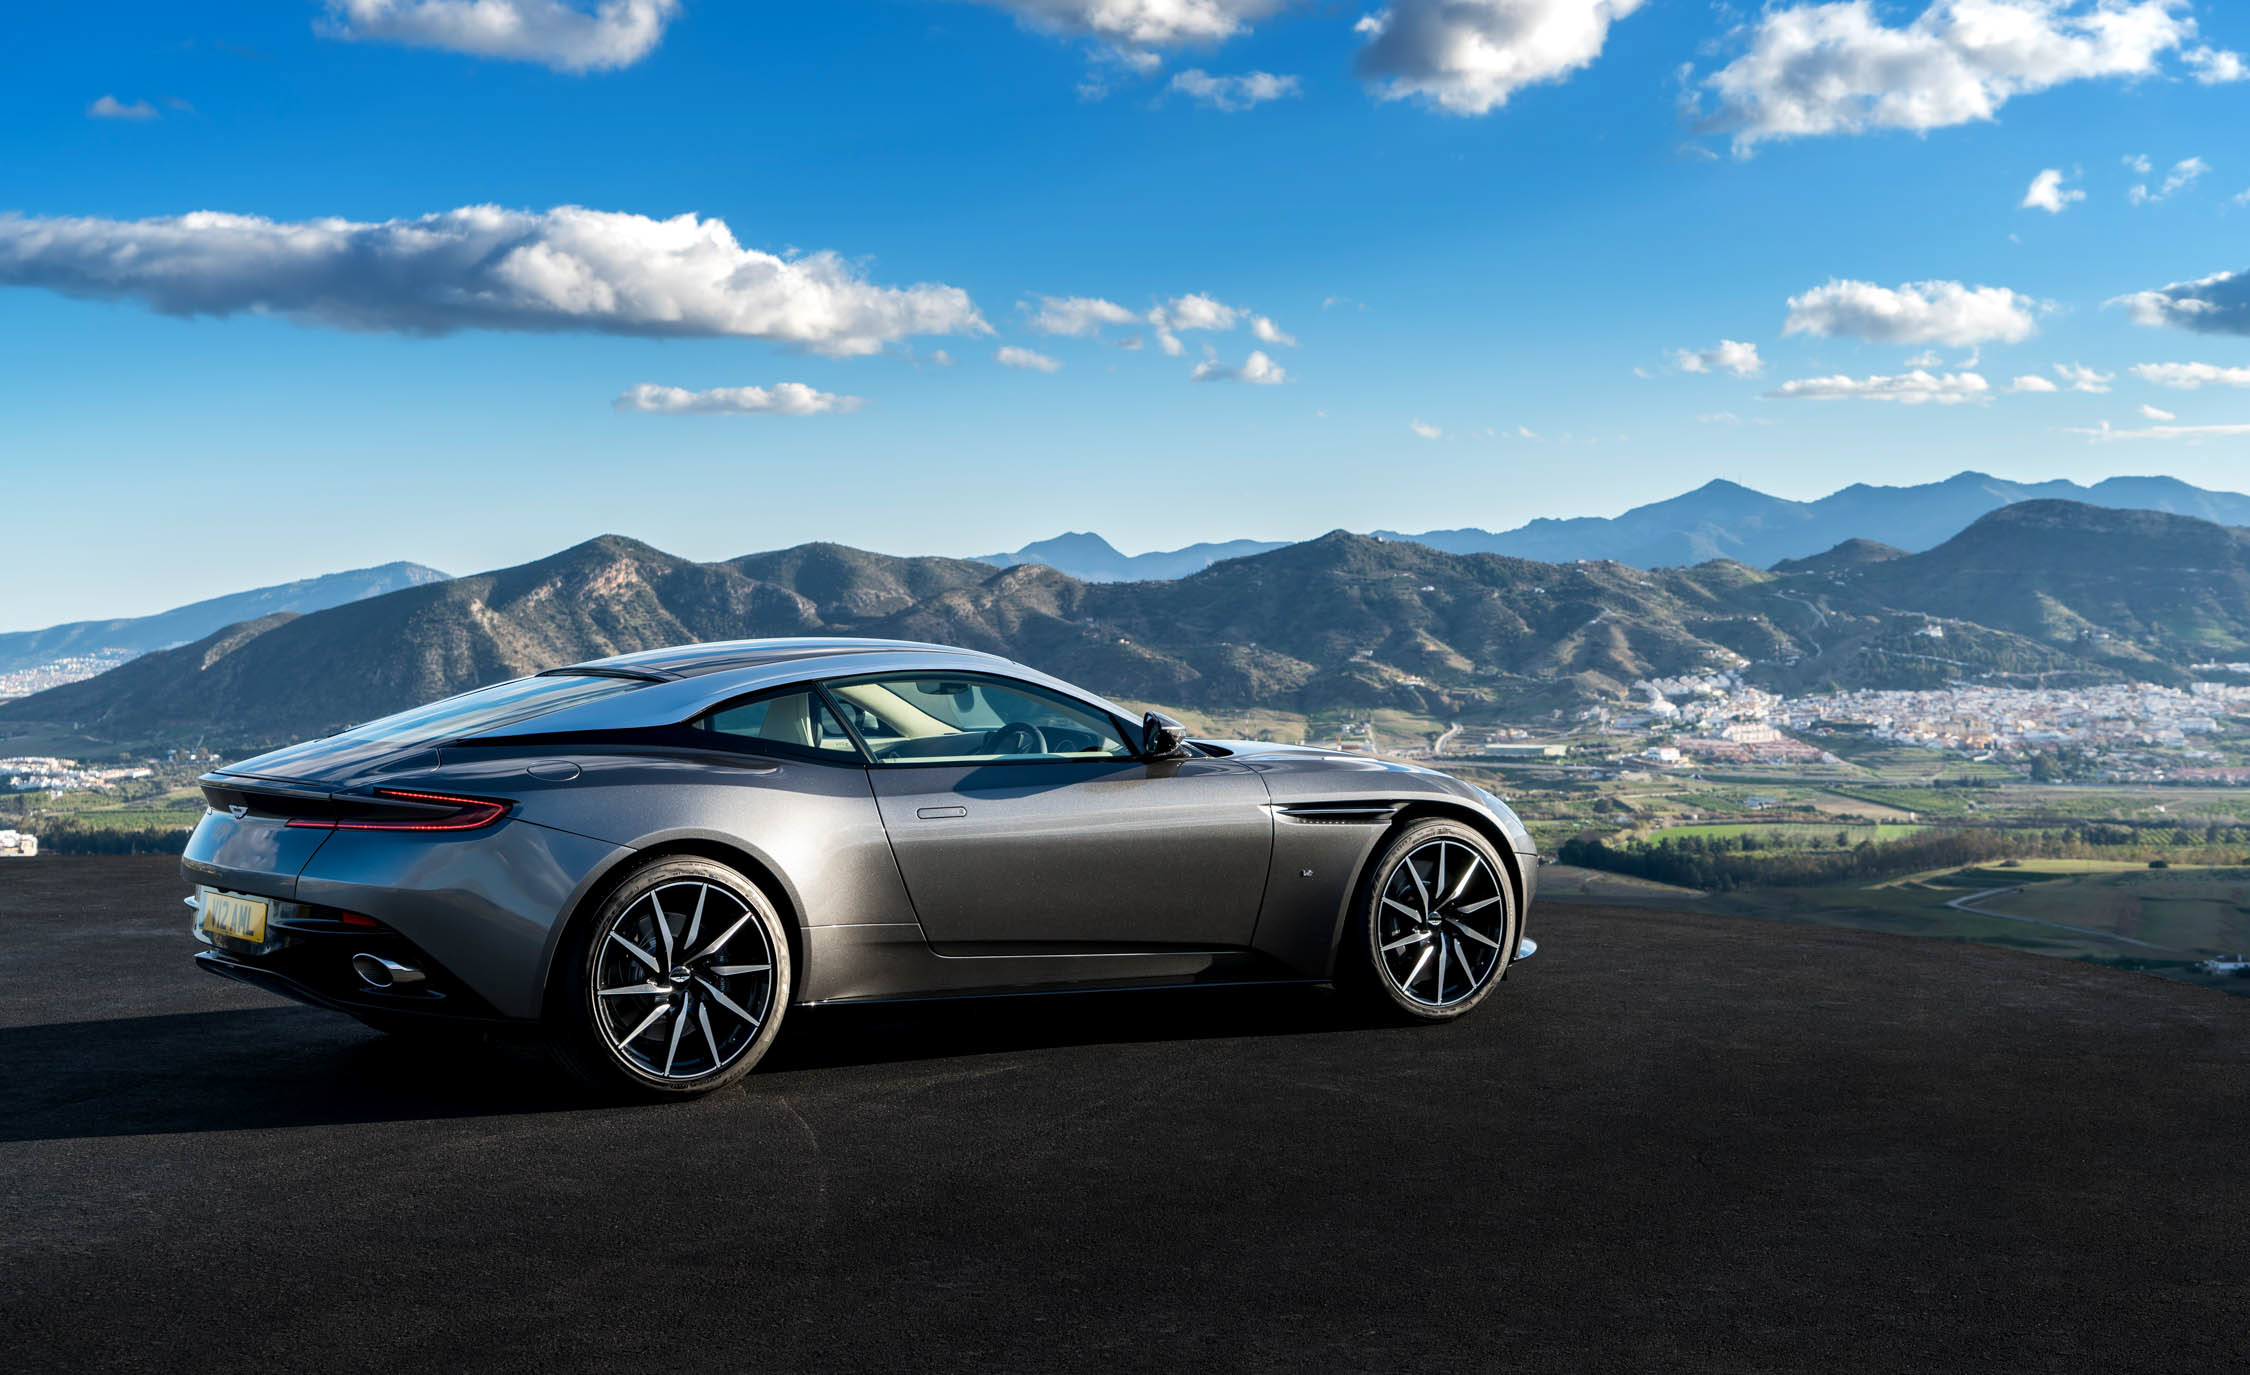 2017 Aston Martin Db11 Exterior Side And Rear View (View 13 of 22)